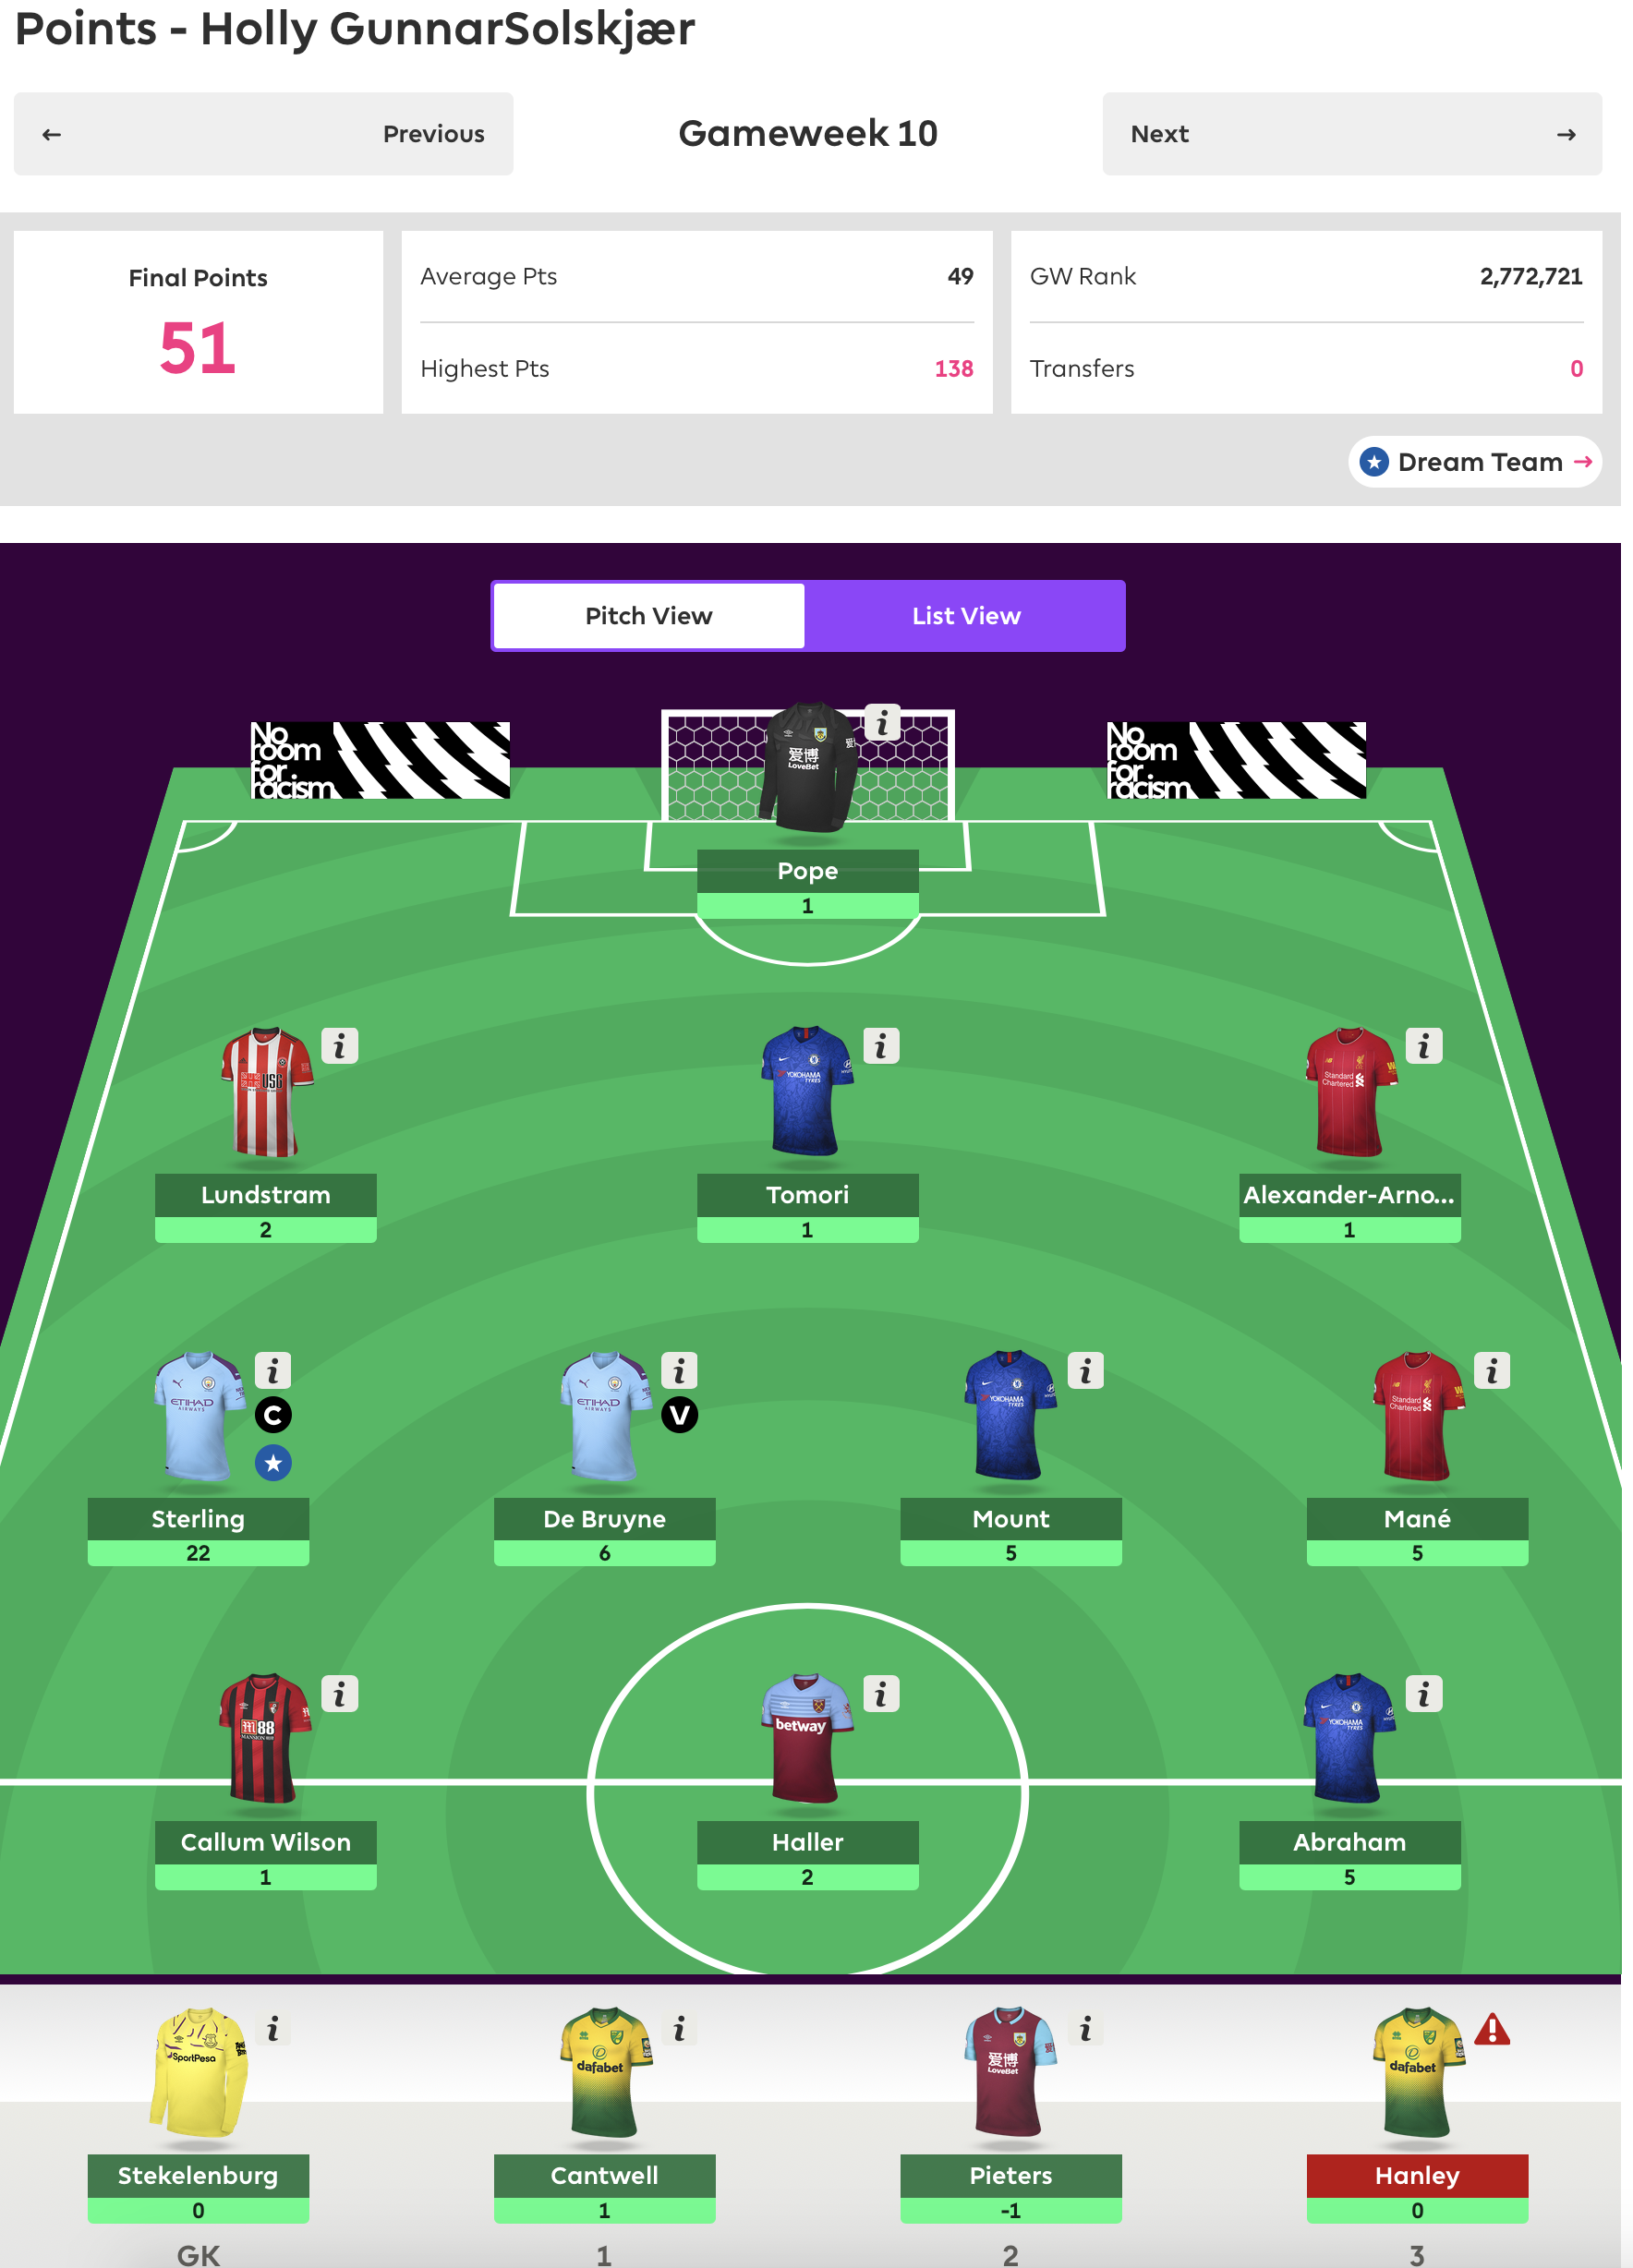 Gameweek 10 Team